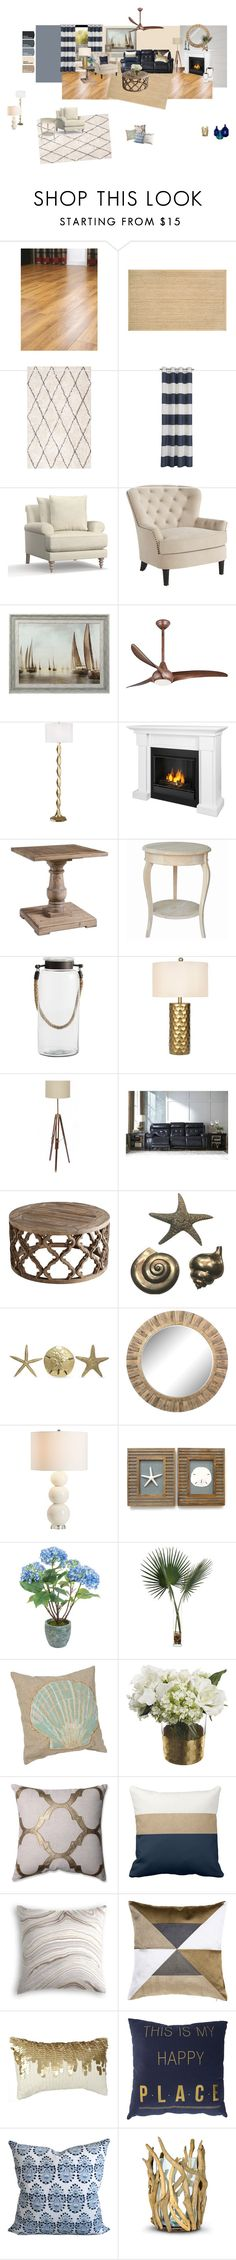 Marcia's Livingroom 3 by haley-freymiller on Polyvore featuring interior, interiors, interior design, home, home decor, interior decorating, Signature Design by Ashley, Pottery Barn, Pier 1 Imports and Pacific Coast